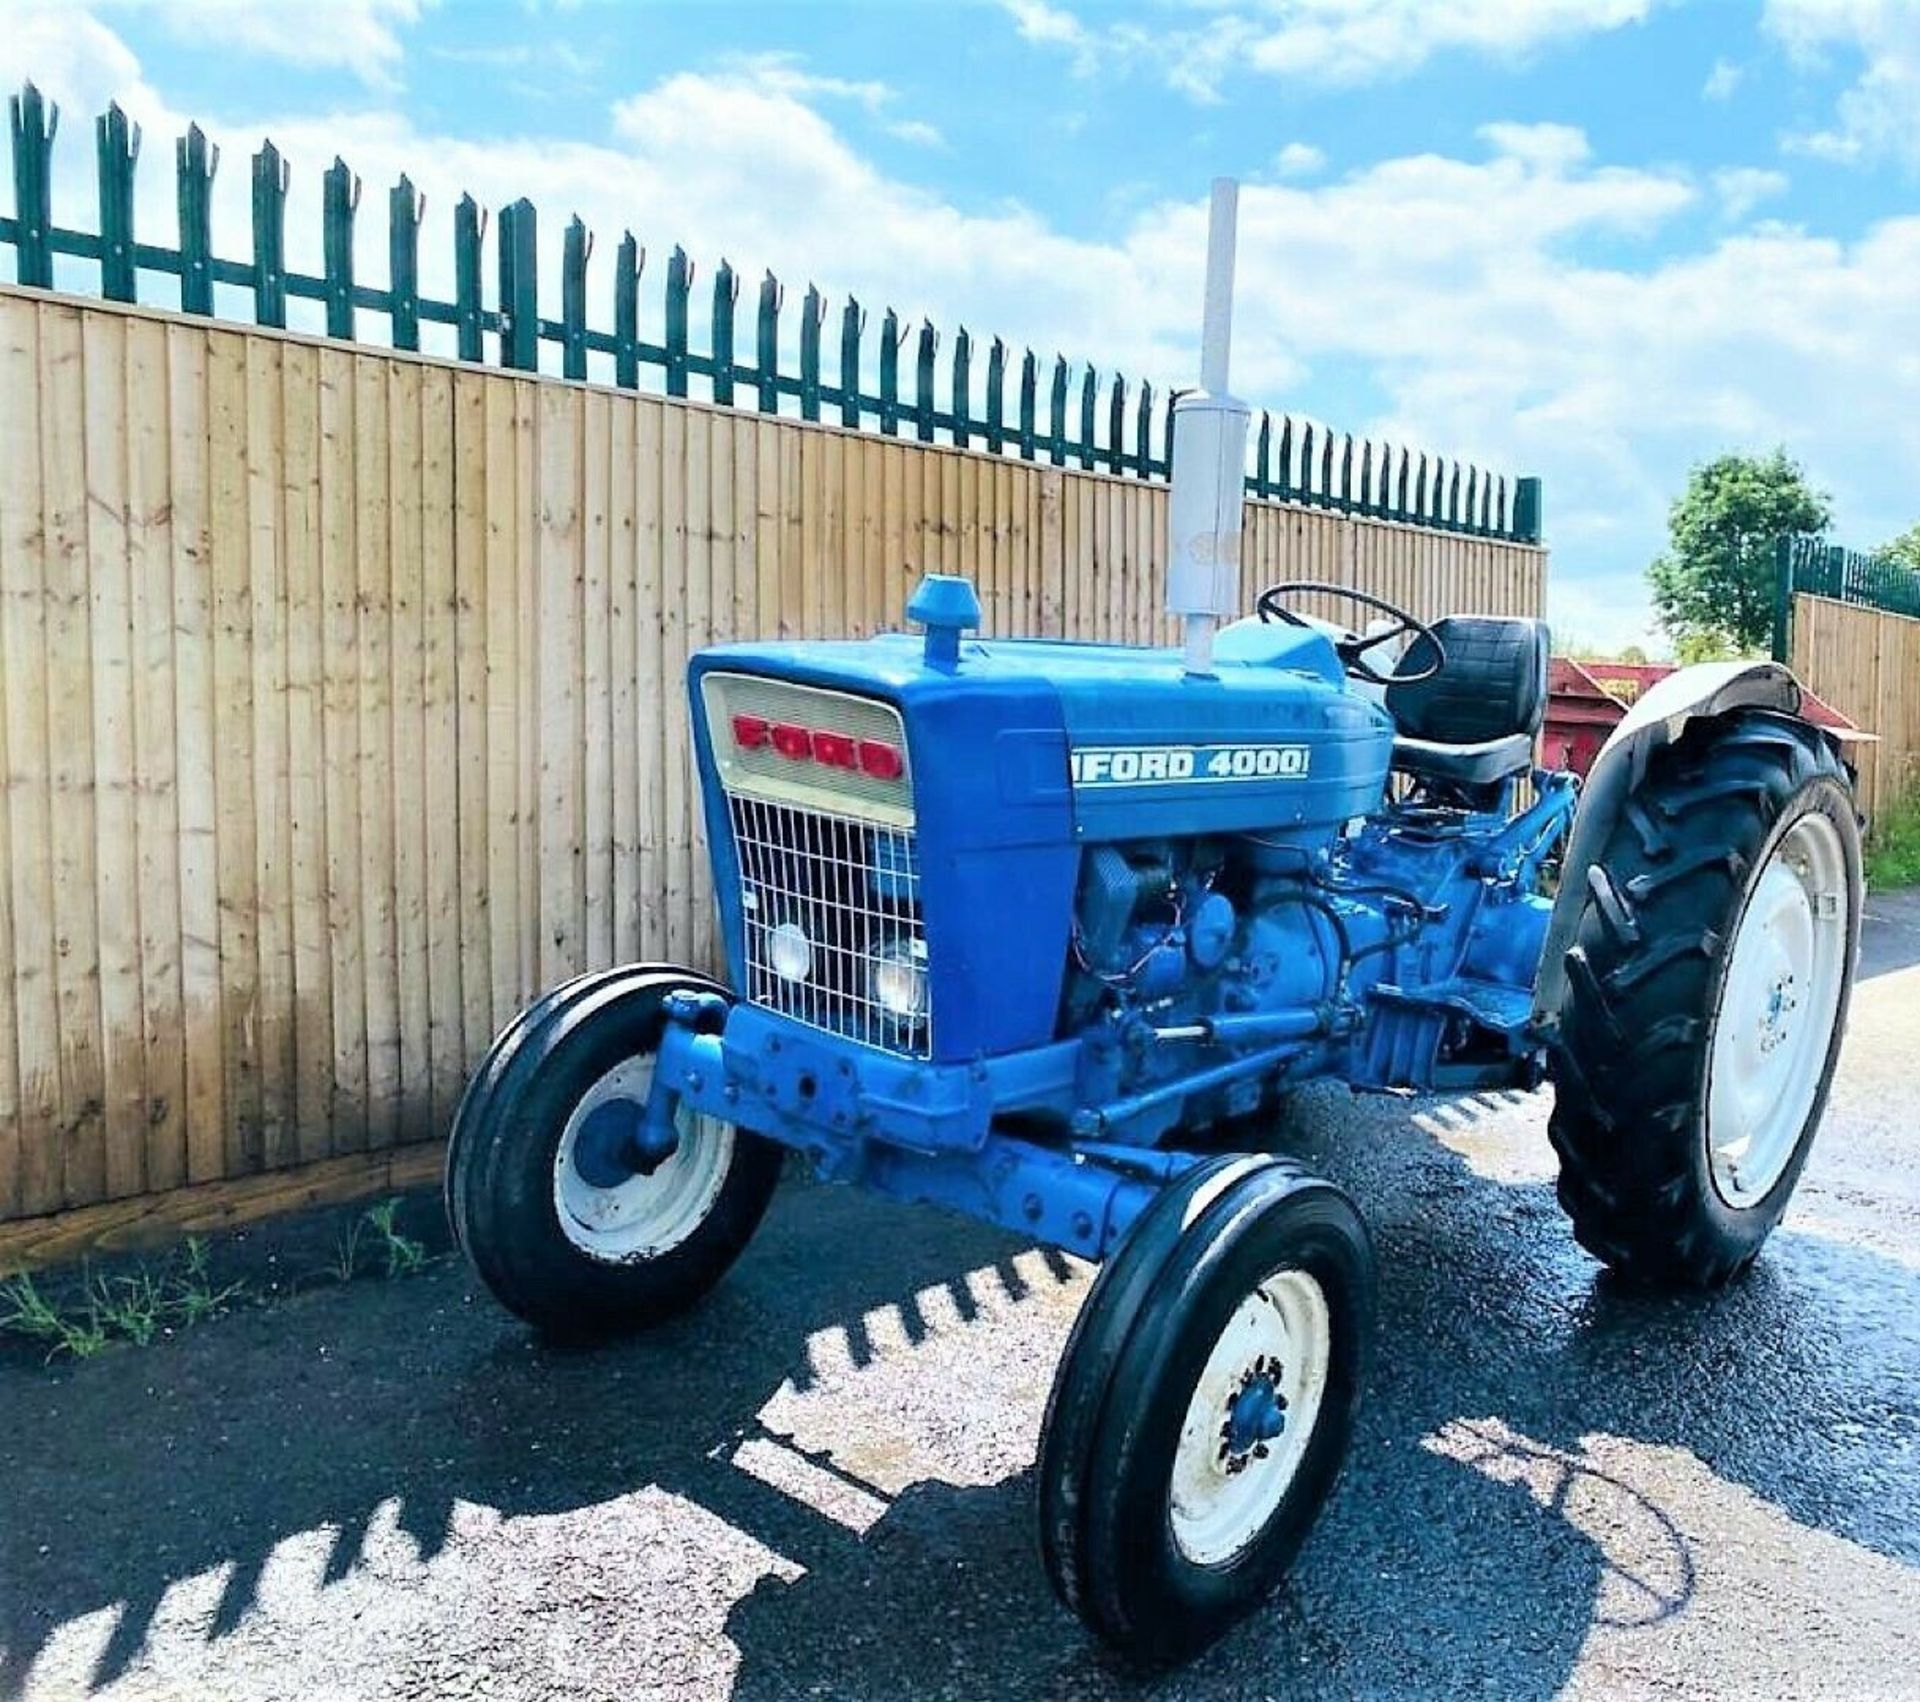 Ford 4000 Tractor 1969 - Image 4 of 12